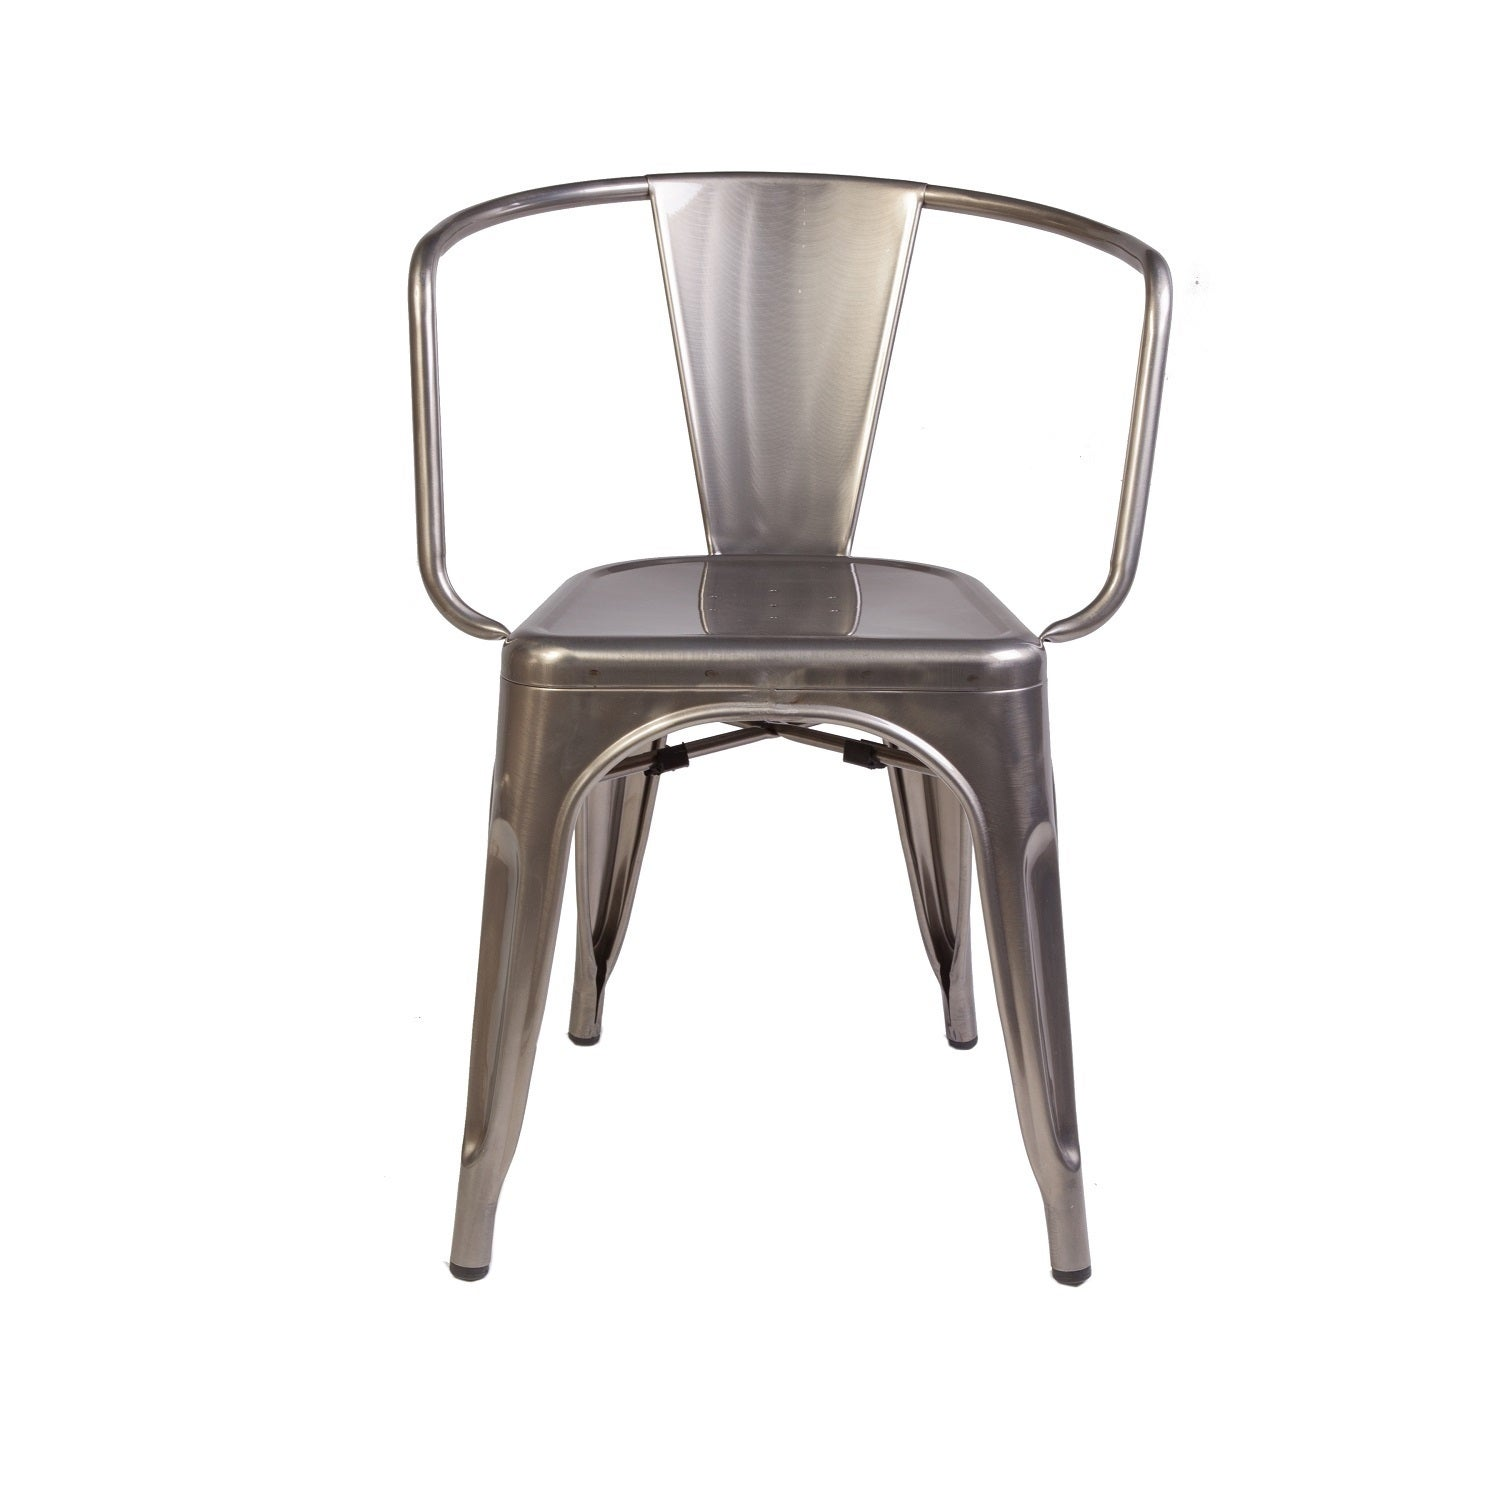 Shop hans andersen home geraldton grey steel arm chair free shipping today overstock 12003354